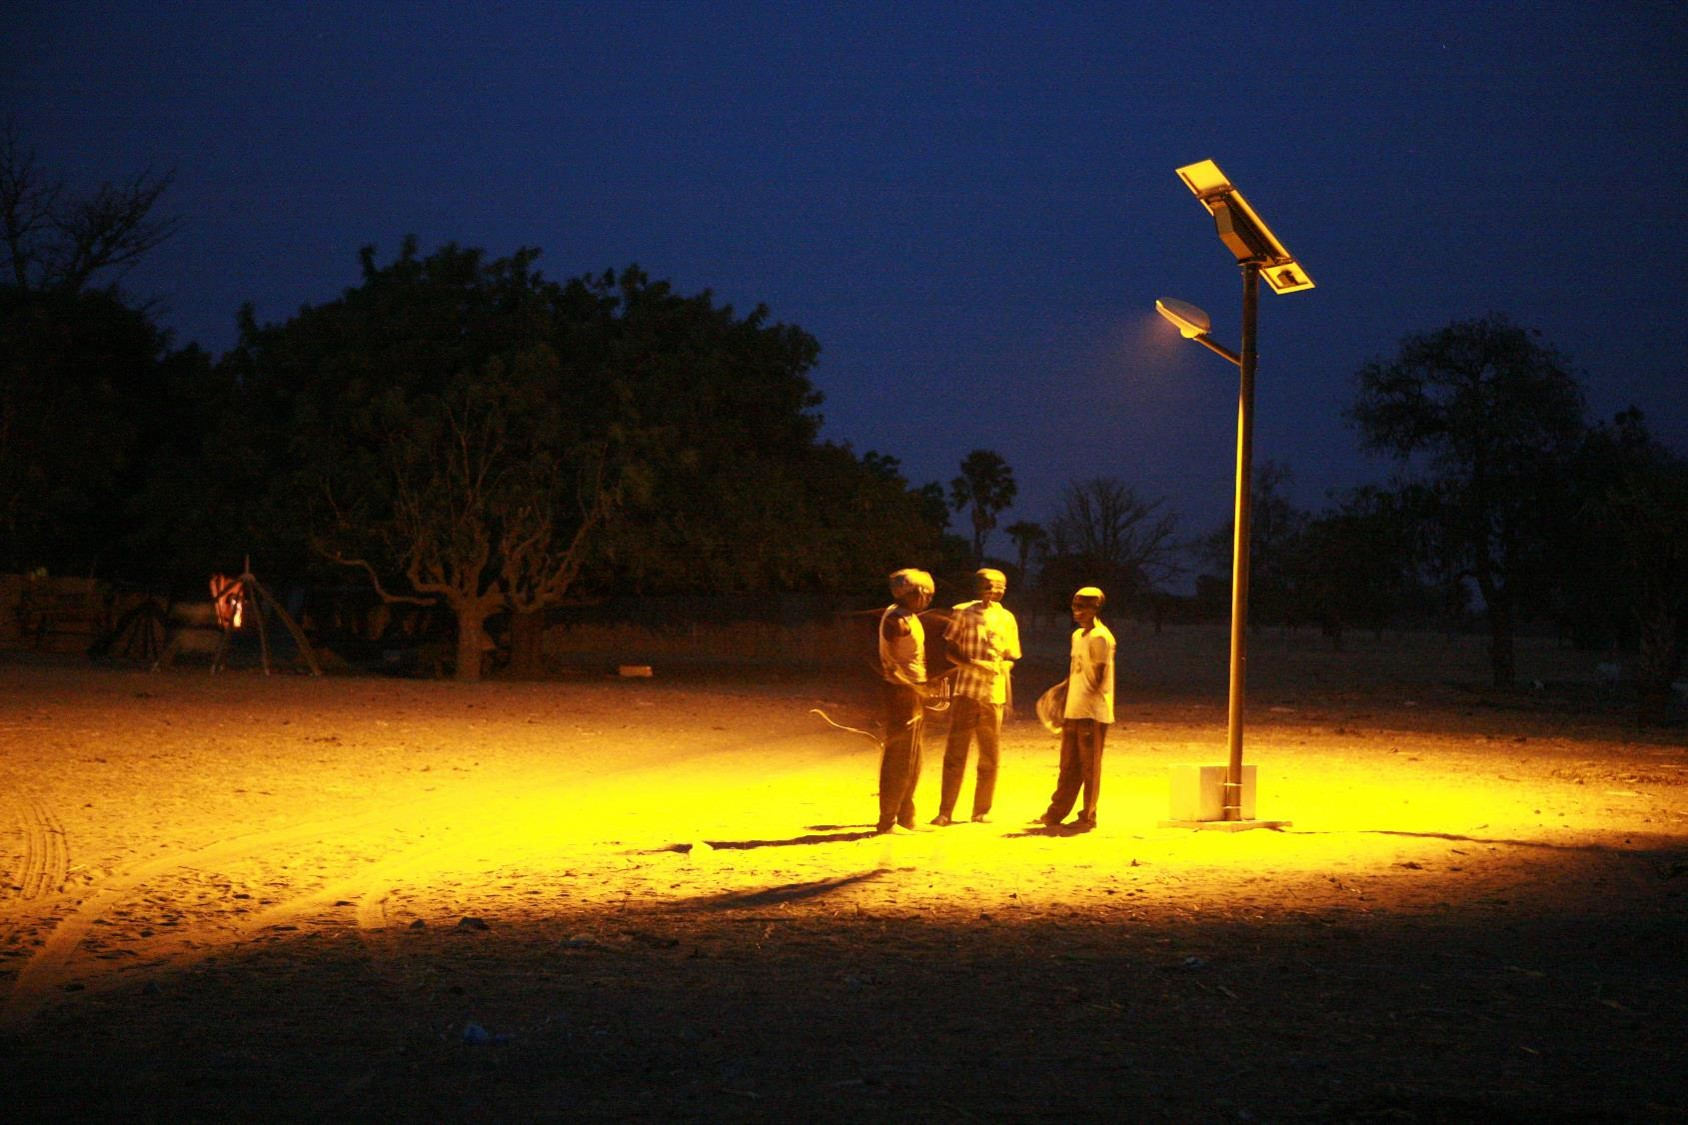 Renewables in Developing Countries and the Challenge of Access to Finance